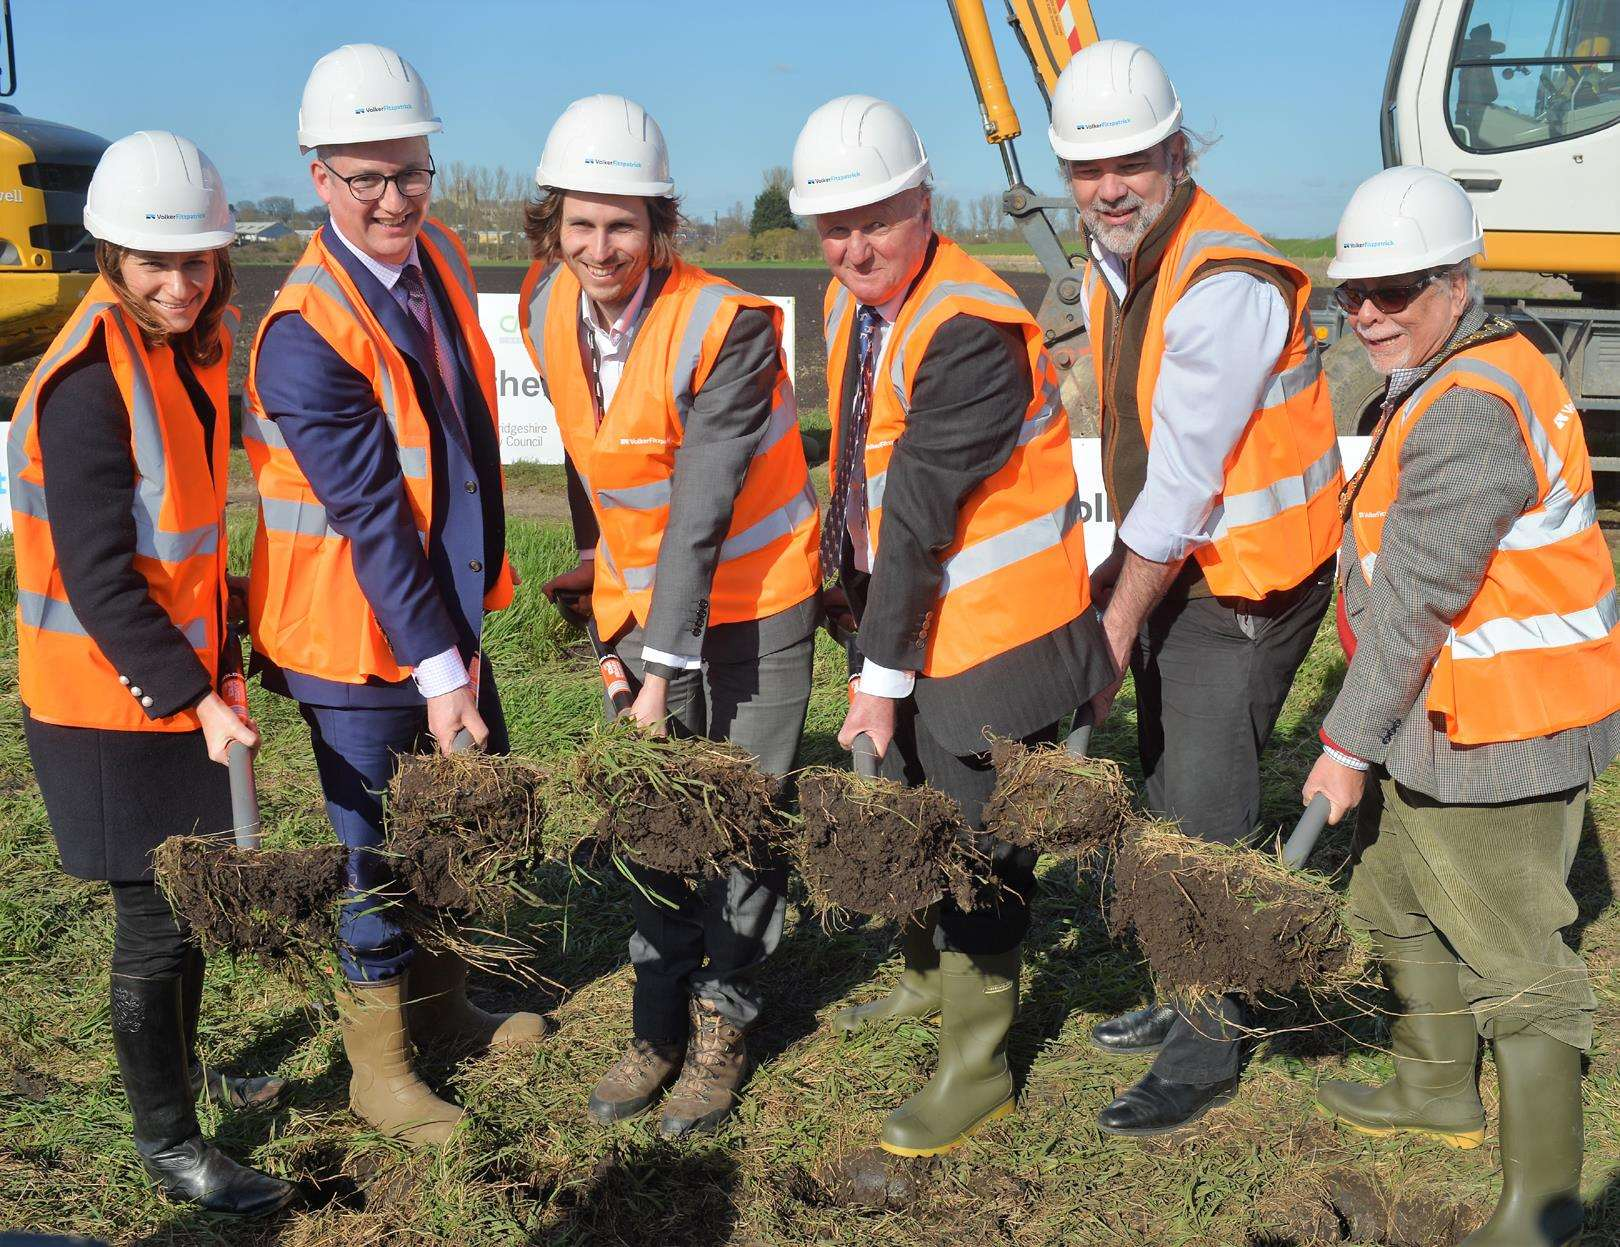 Work started on the bypass on March 3 2017. Pictured, from left, are:Lucy Frazer MP, Cllr Sebastian Kindersley, Nick Eddy Network Rail, Sir Jim Paice, Mark Reeve, and Cllr Michael Allen East Cambs District Council (4751947)